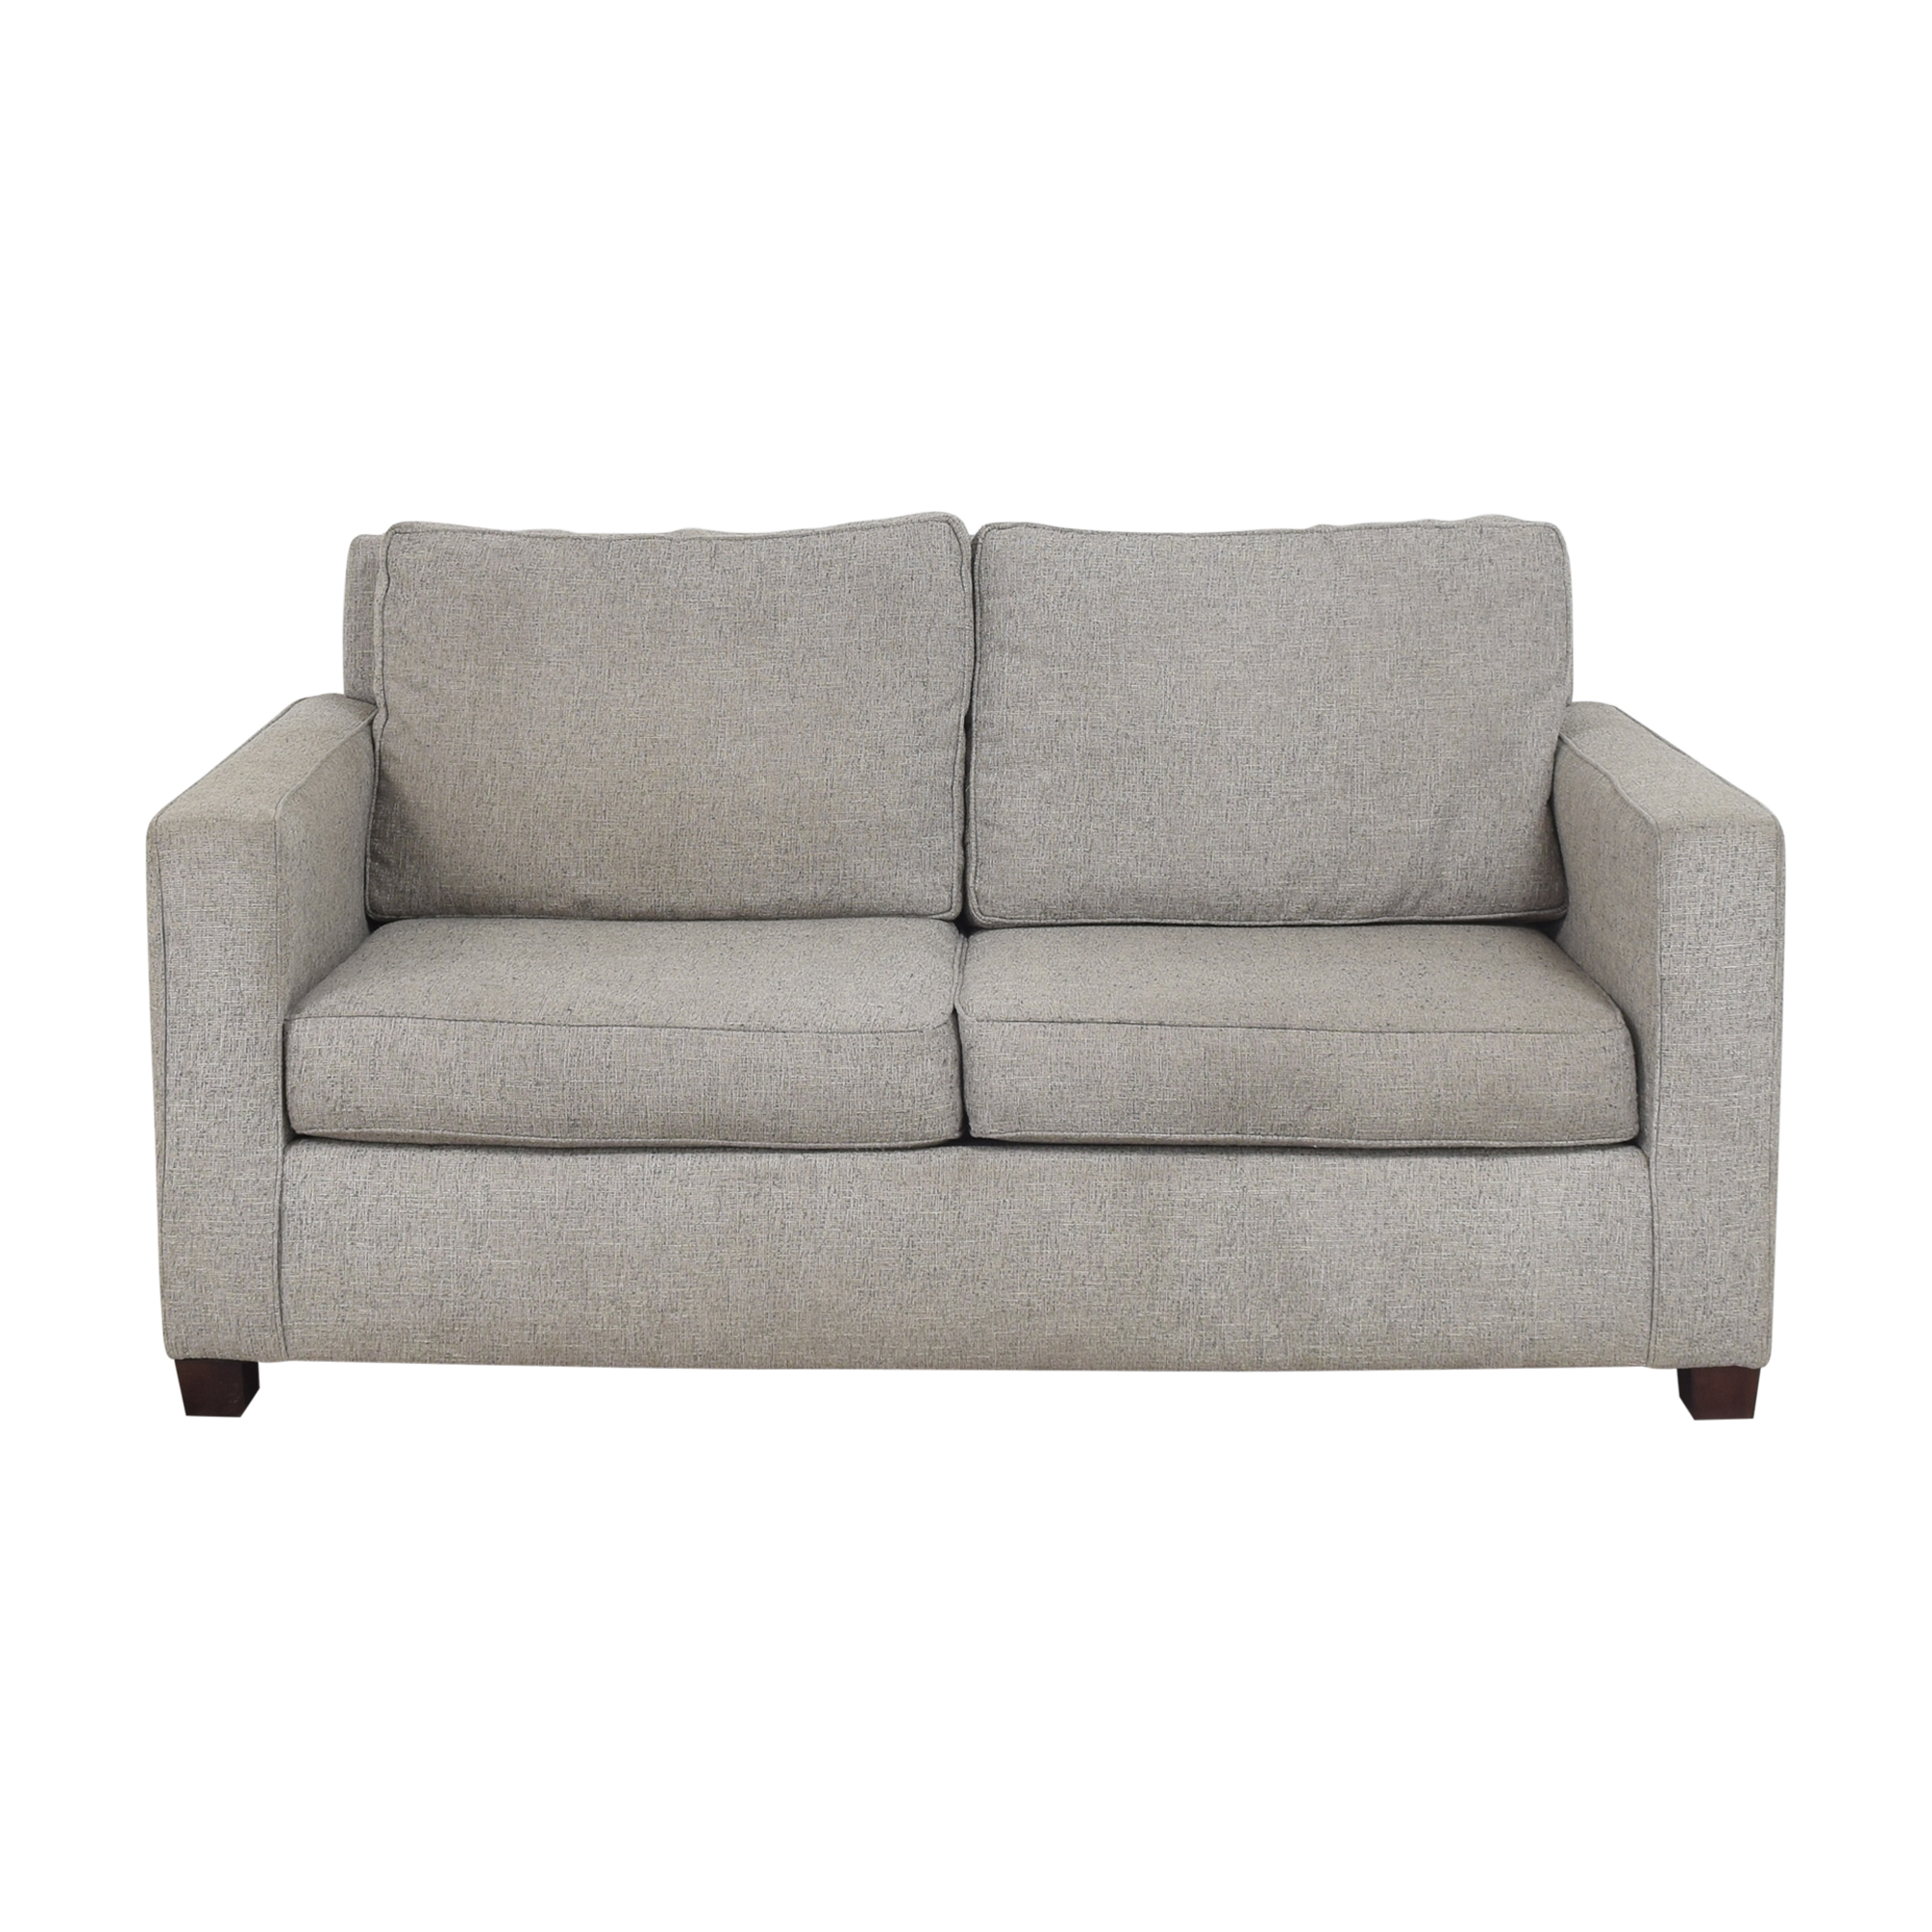 West Elm West Elm Henry Loveseat for sale